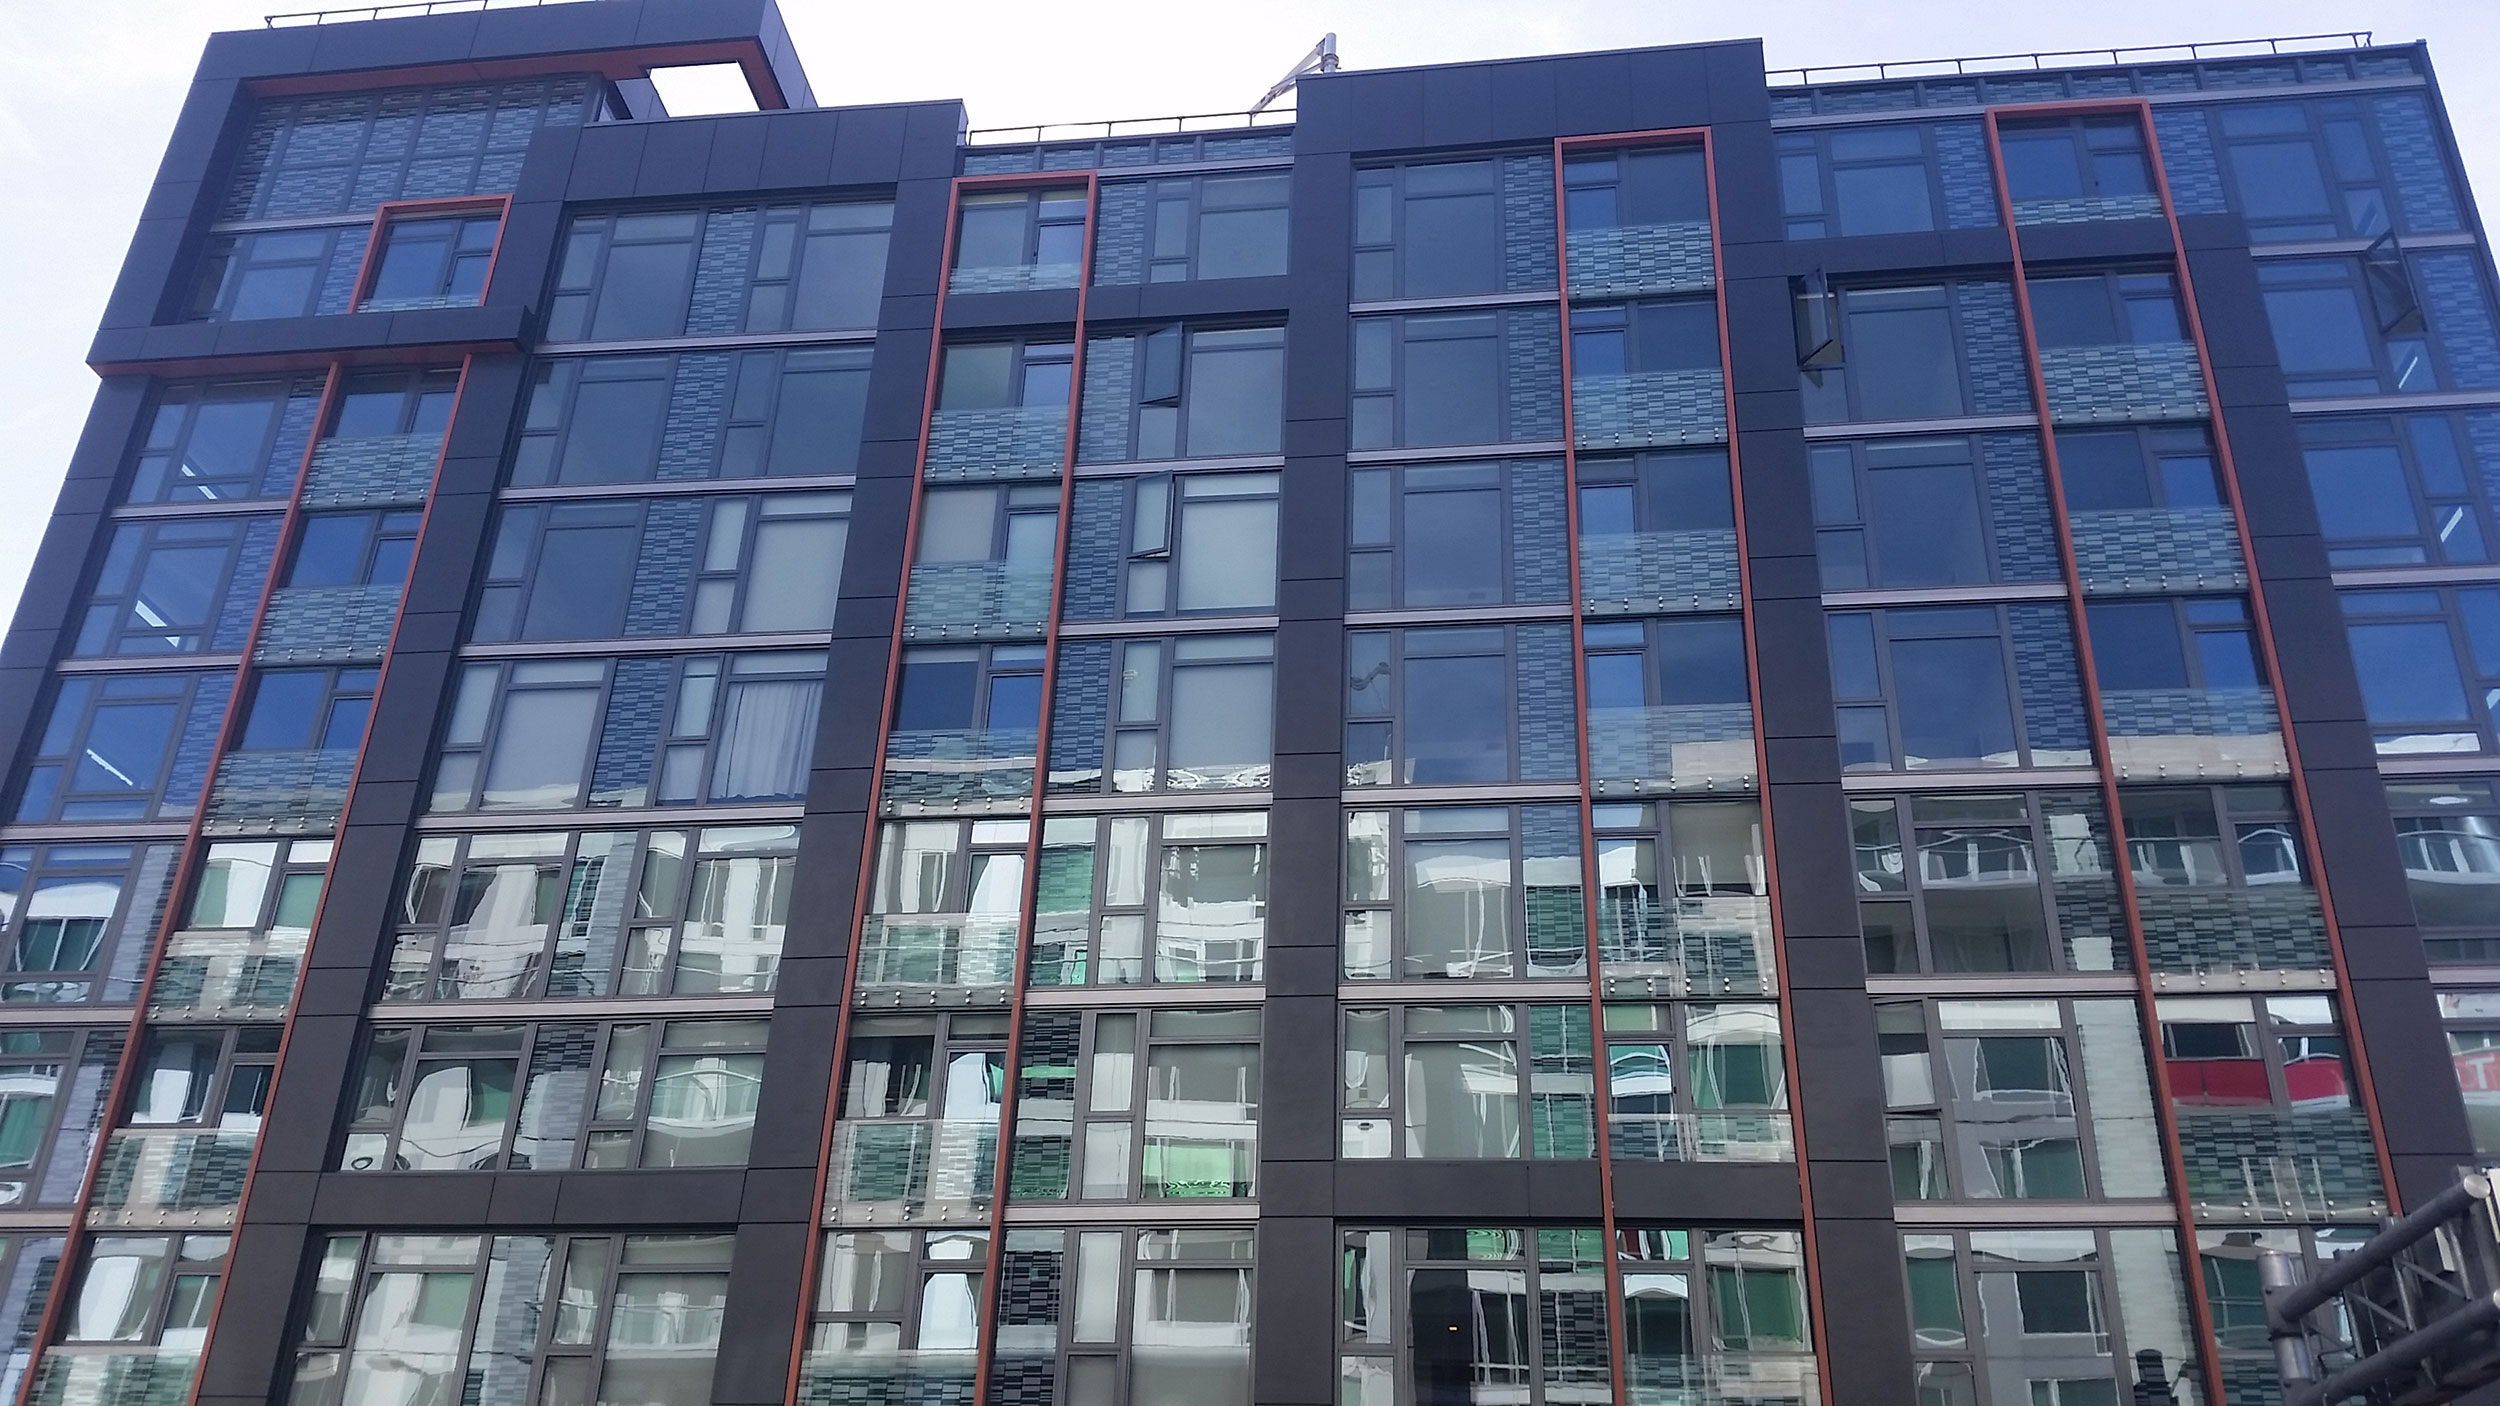 923 Folsom, San Francisco, CA, Thermal Windows, Solomon Cordwell Buenz, Cahill Contractors, IFS 500FP